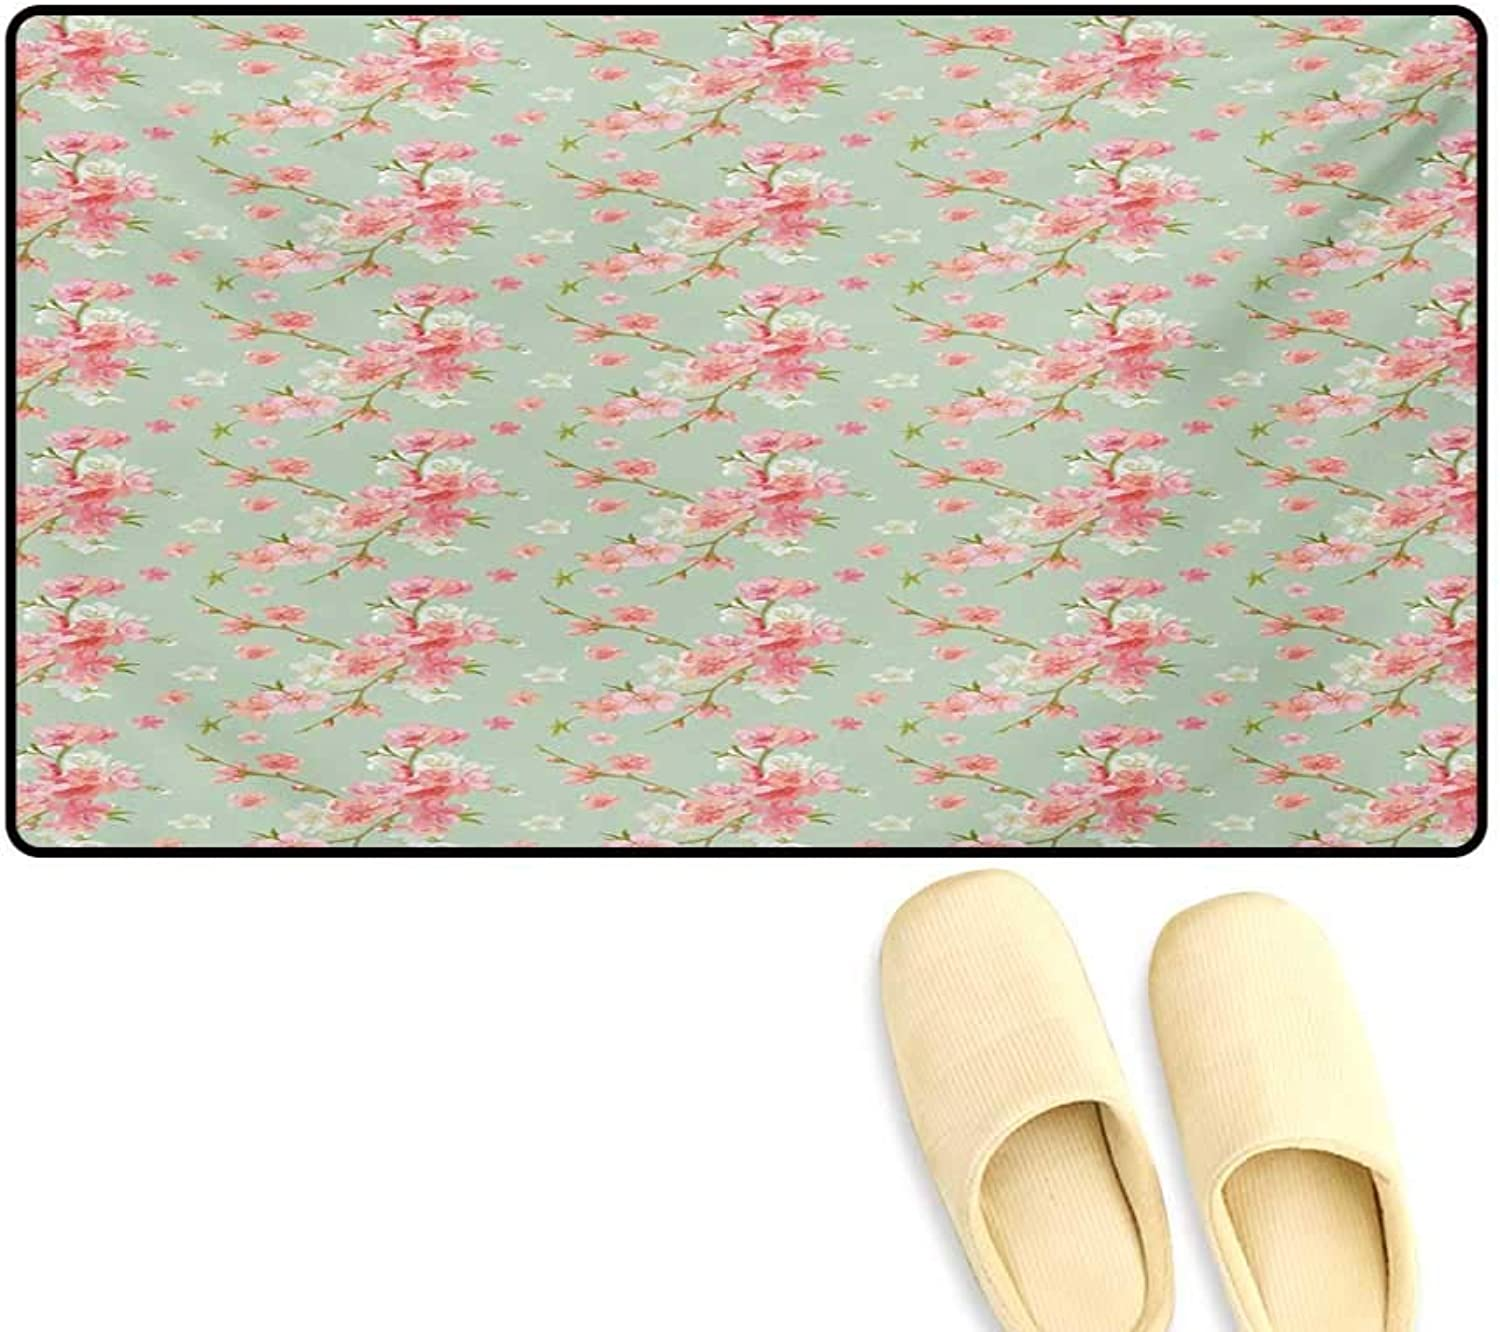 Door-mat,Retro Spring Blossom Flowers with French Garden Florets Garland Artisan Image,Bathroom Mat for Tub Non Slip,Mint Pink,24 x36